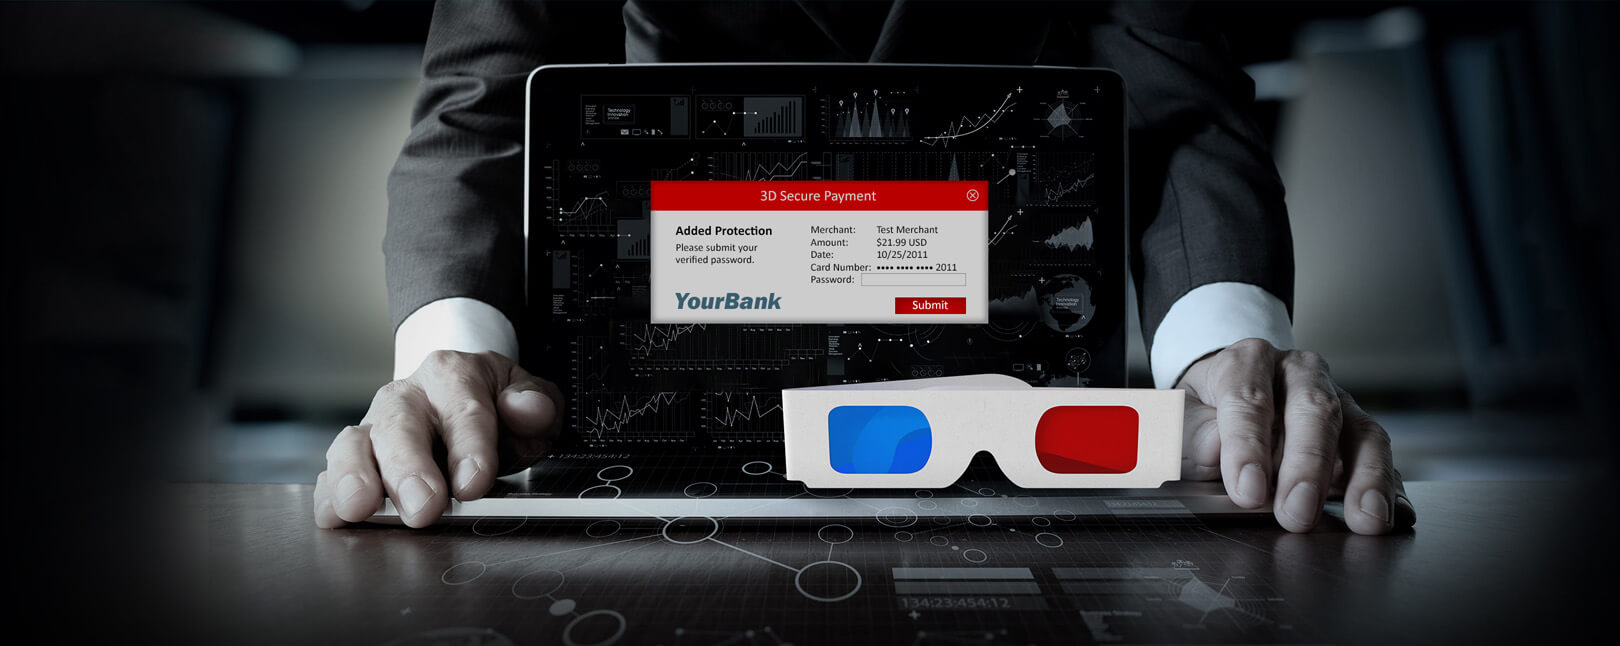 3-D Secure Chargeback Prevention